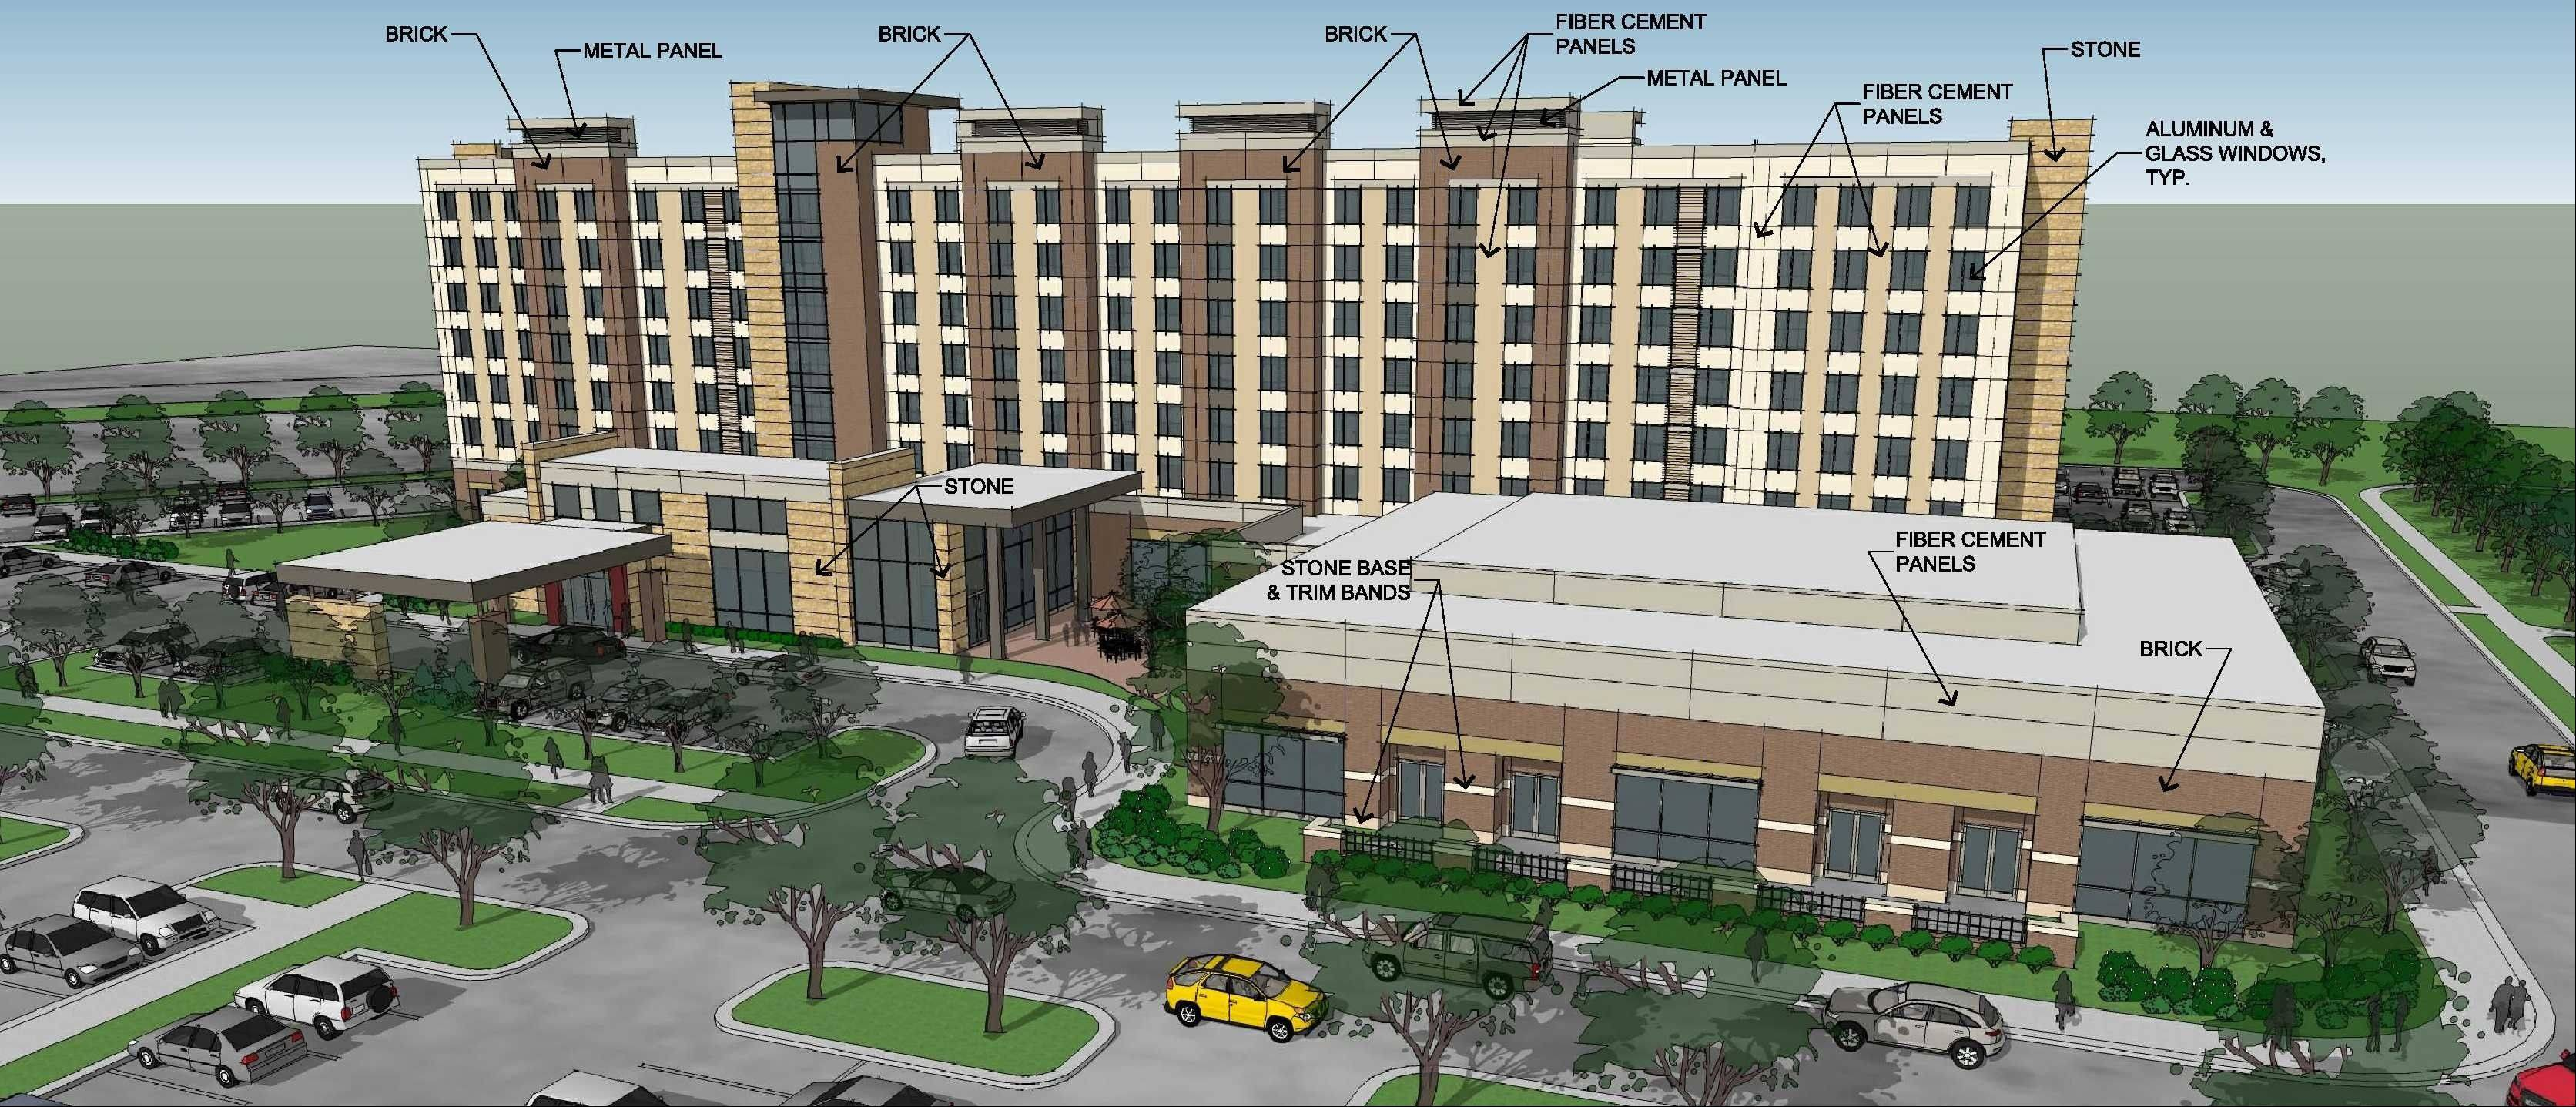 Naperville offering $7.5 million to Freedom Plaza developer